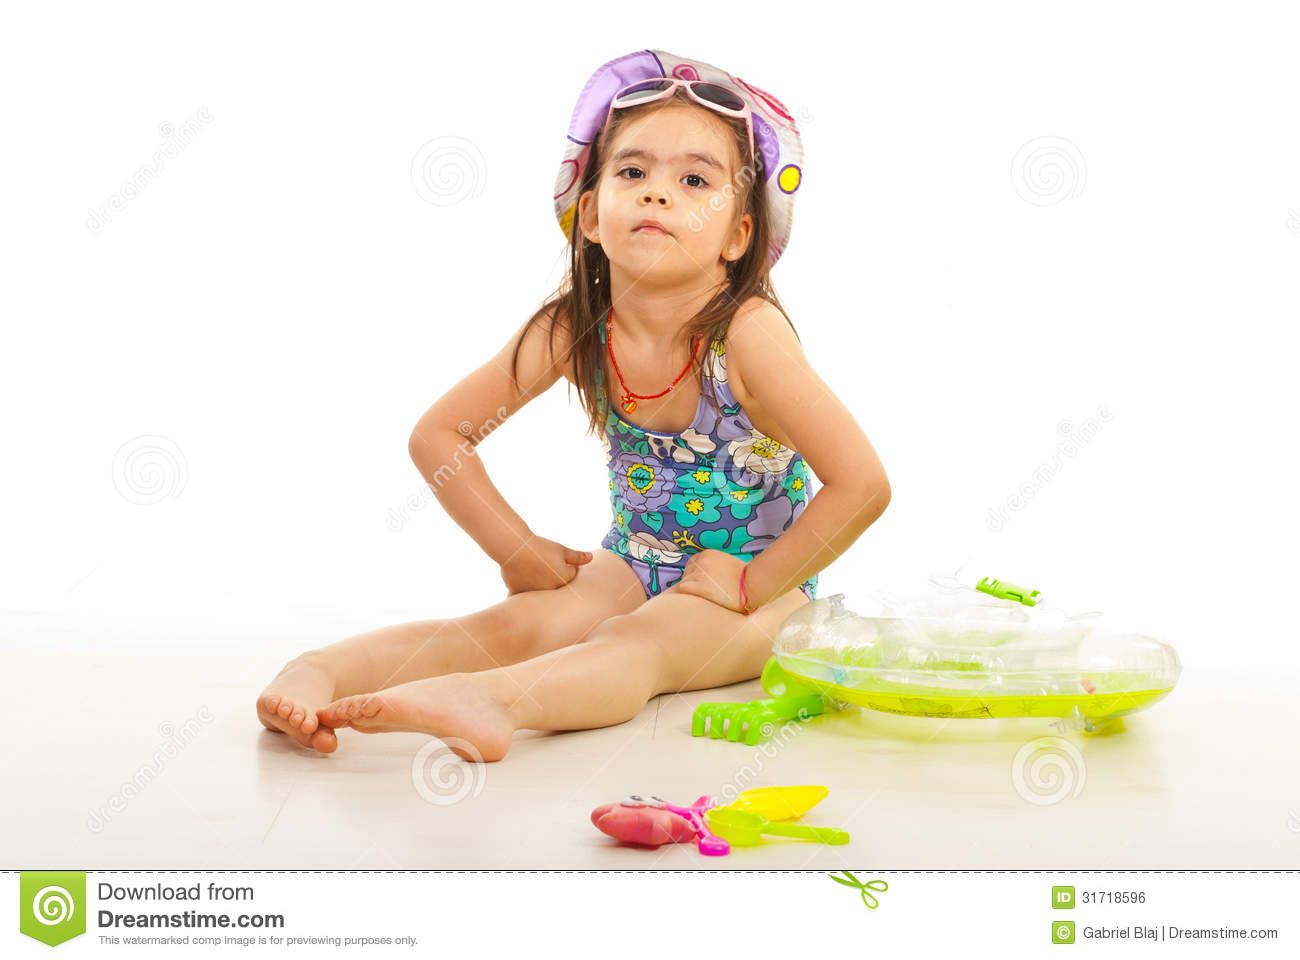 Beach Toys For Girls : Beach kid girl with toys royalty free stock image